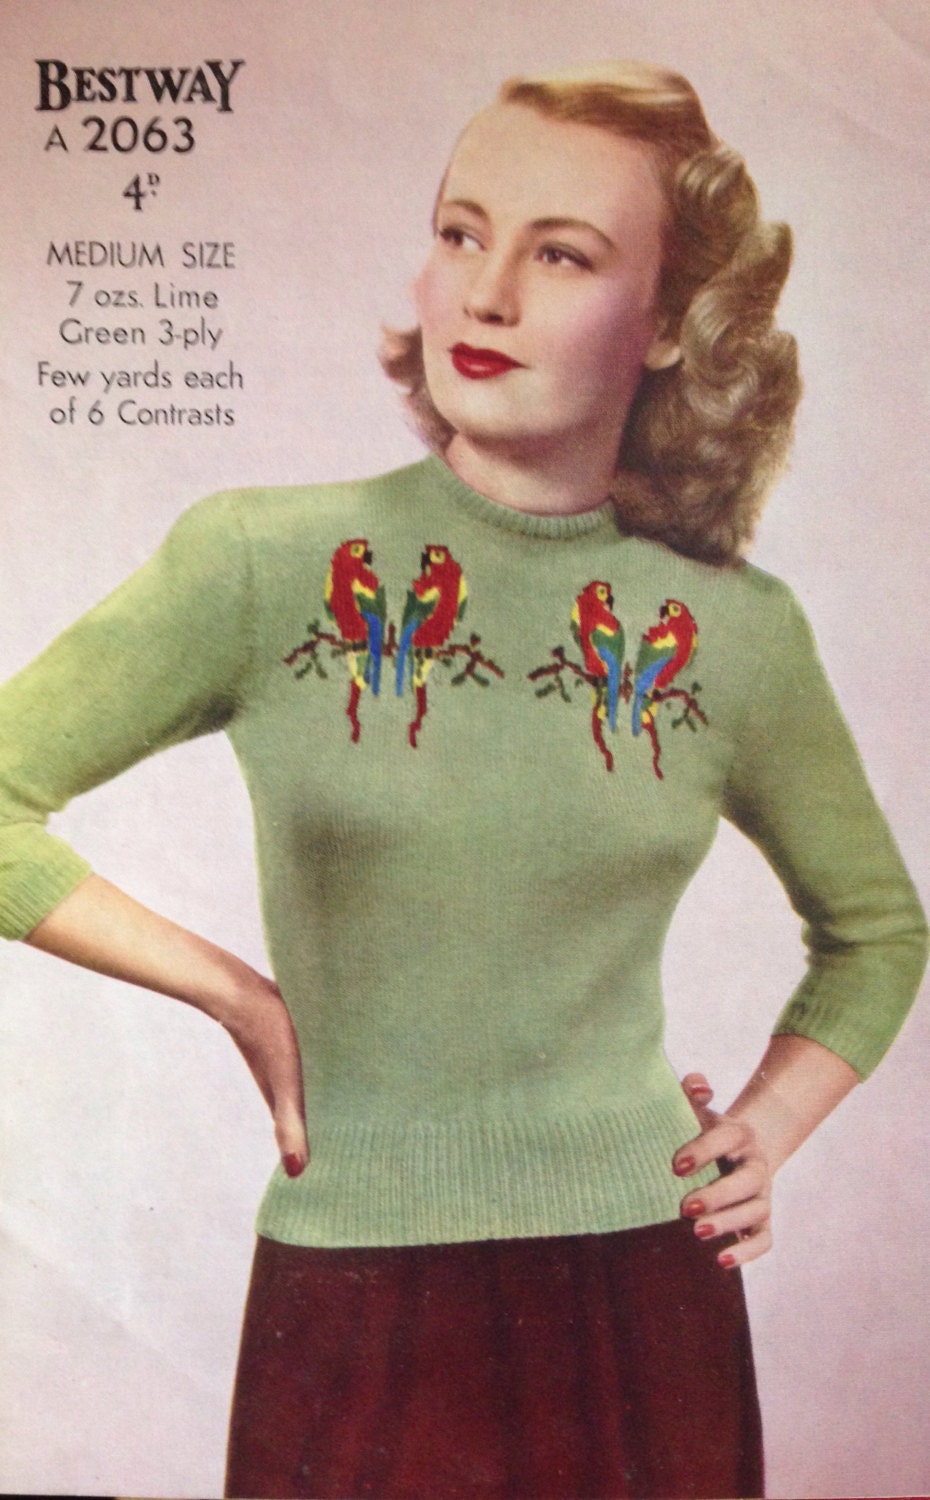 1940\'s Bestway Knitting Pattern for a Stunning Fair Isle